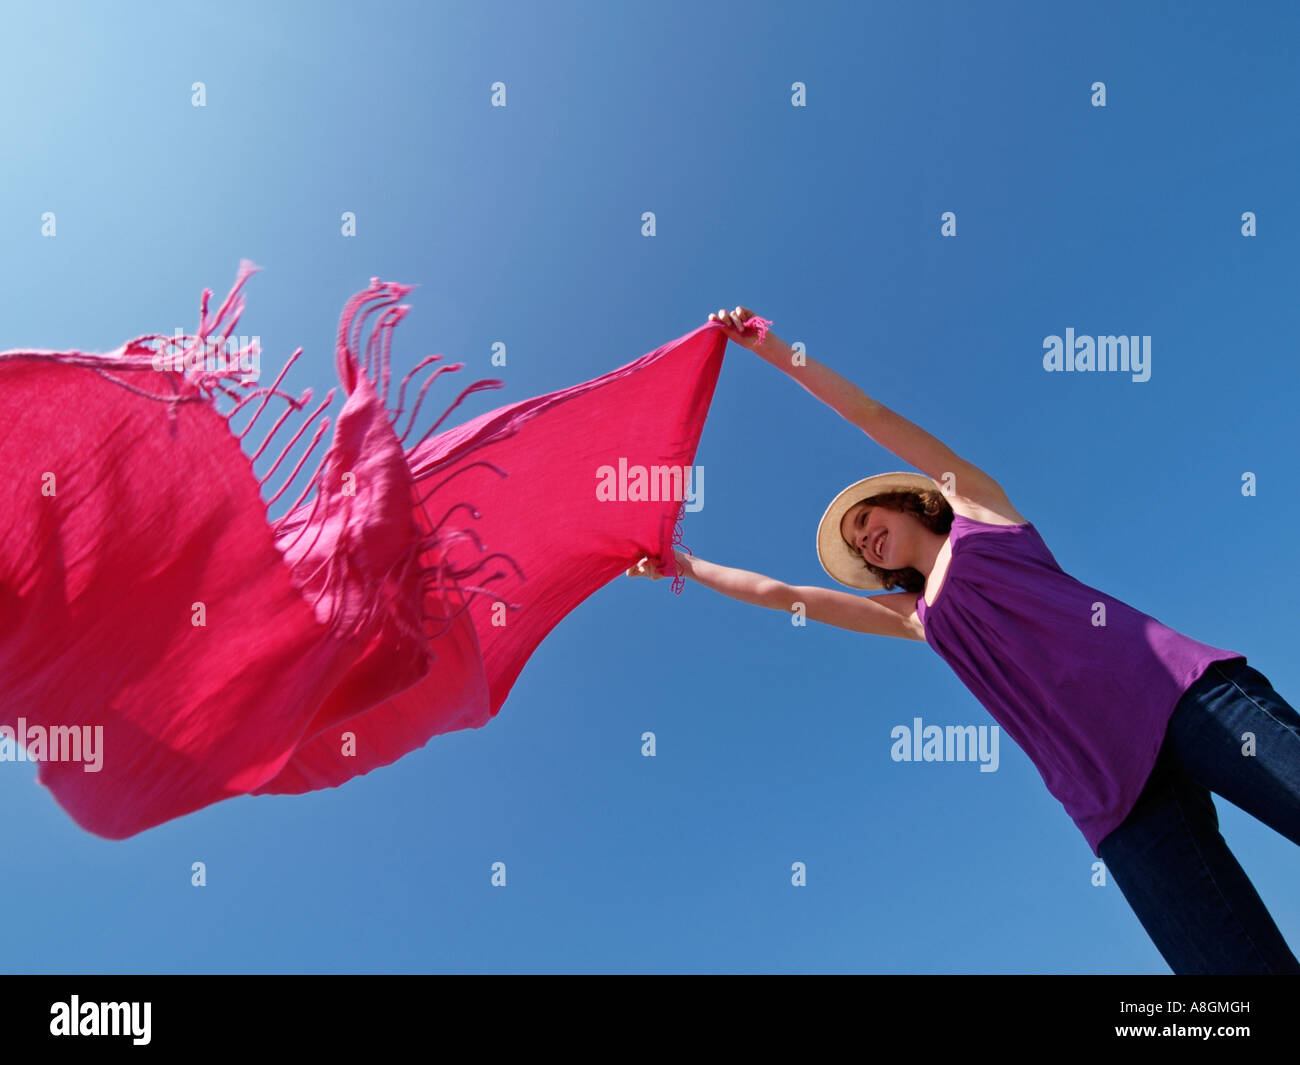 Teenage girl young woman waving big pink scarf against blue sky wind summer fun - Stock Image